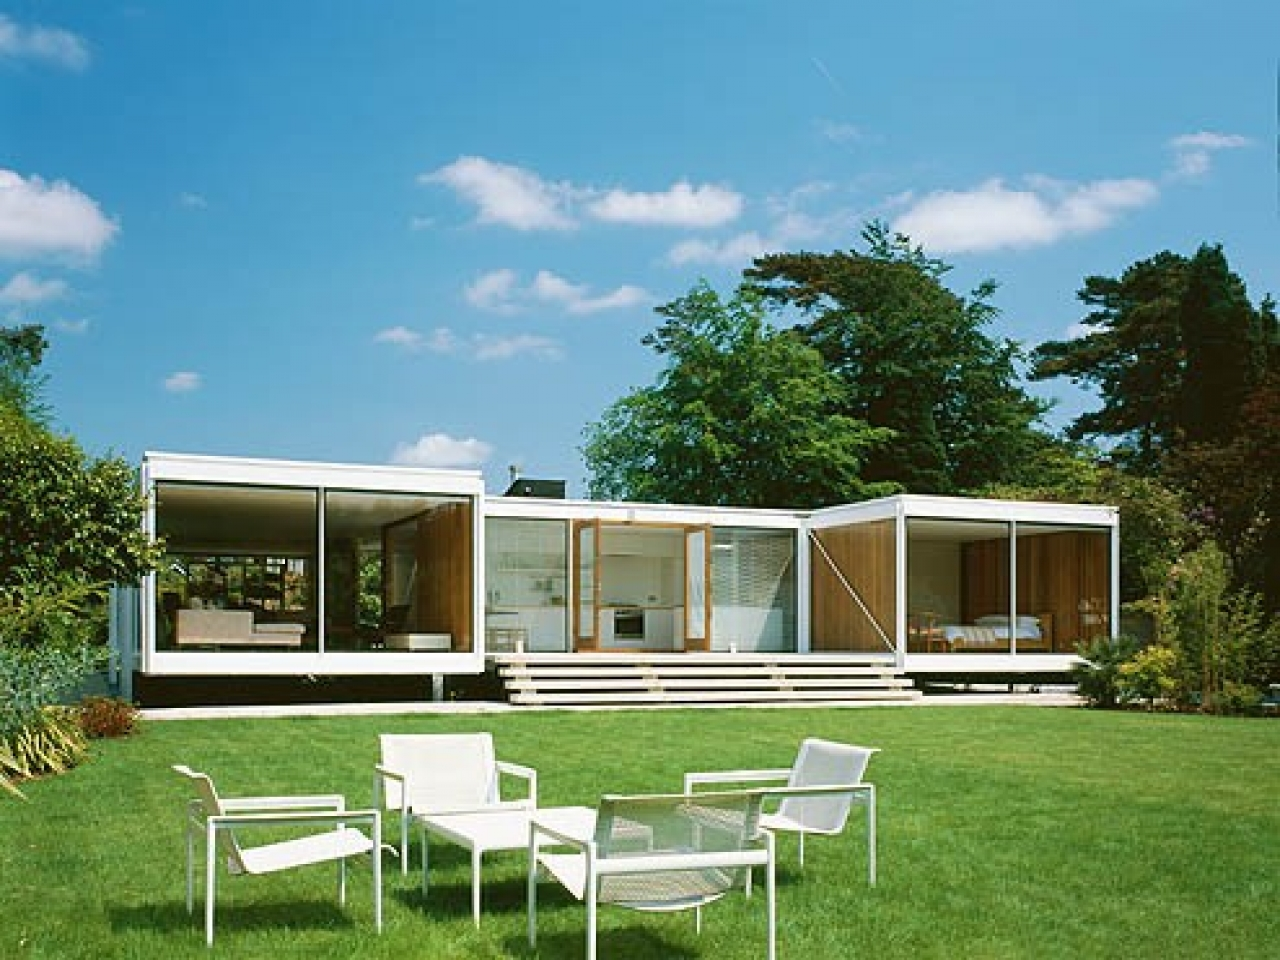 Simple Modern House Plan Designs Simple Home Plans and ...